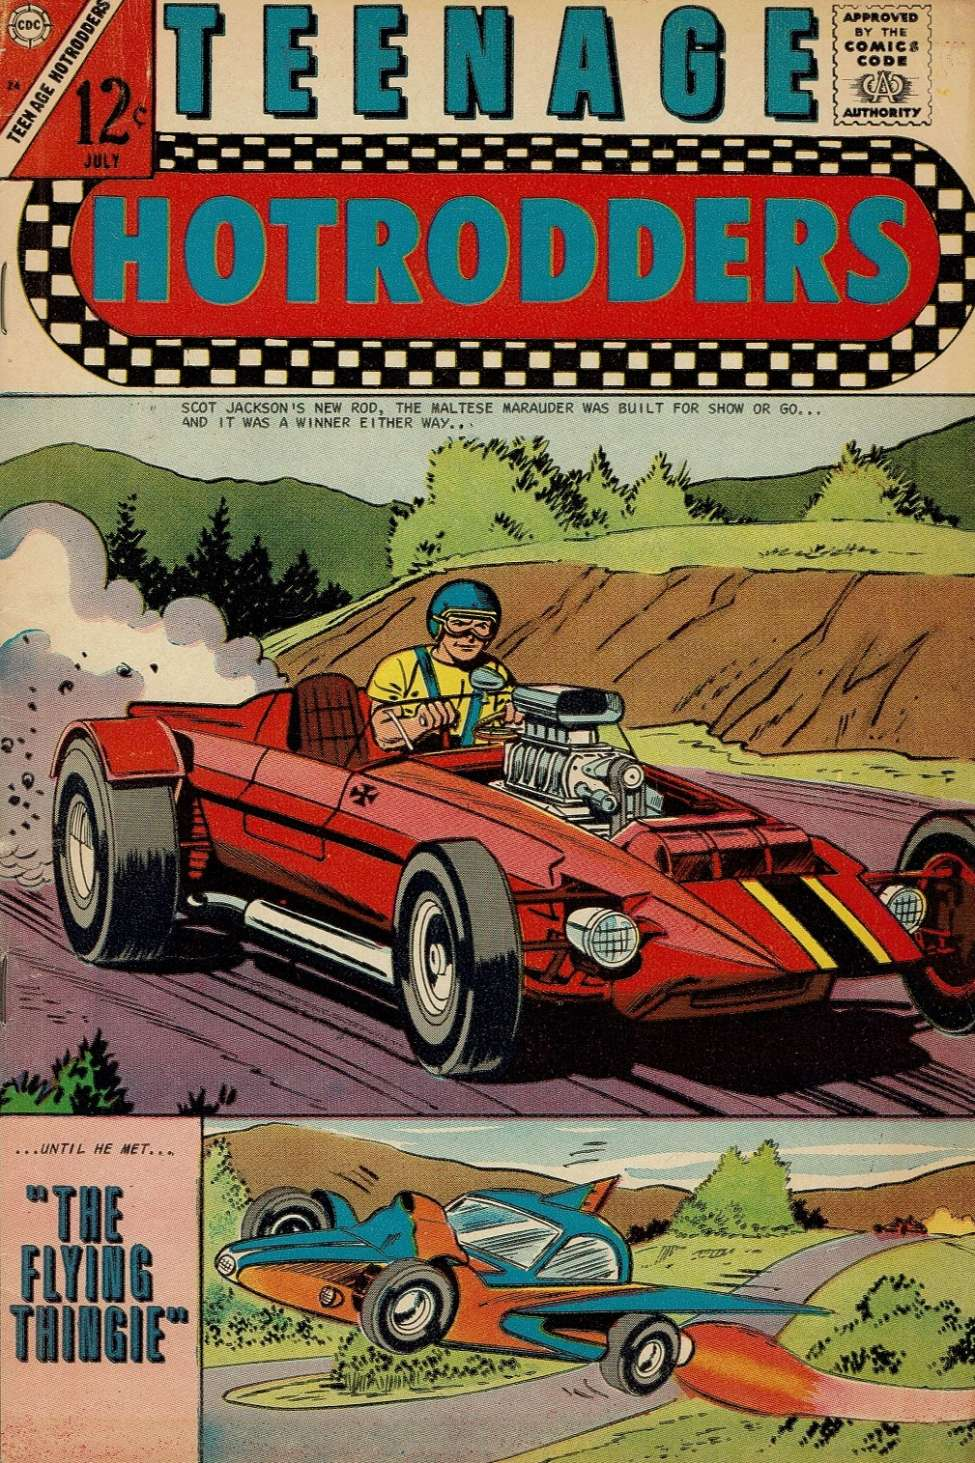 Teenage Hotrodders #24 (Charlton) - Comic Book Plus